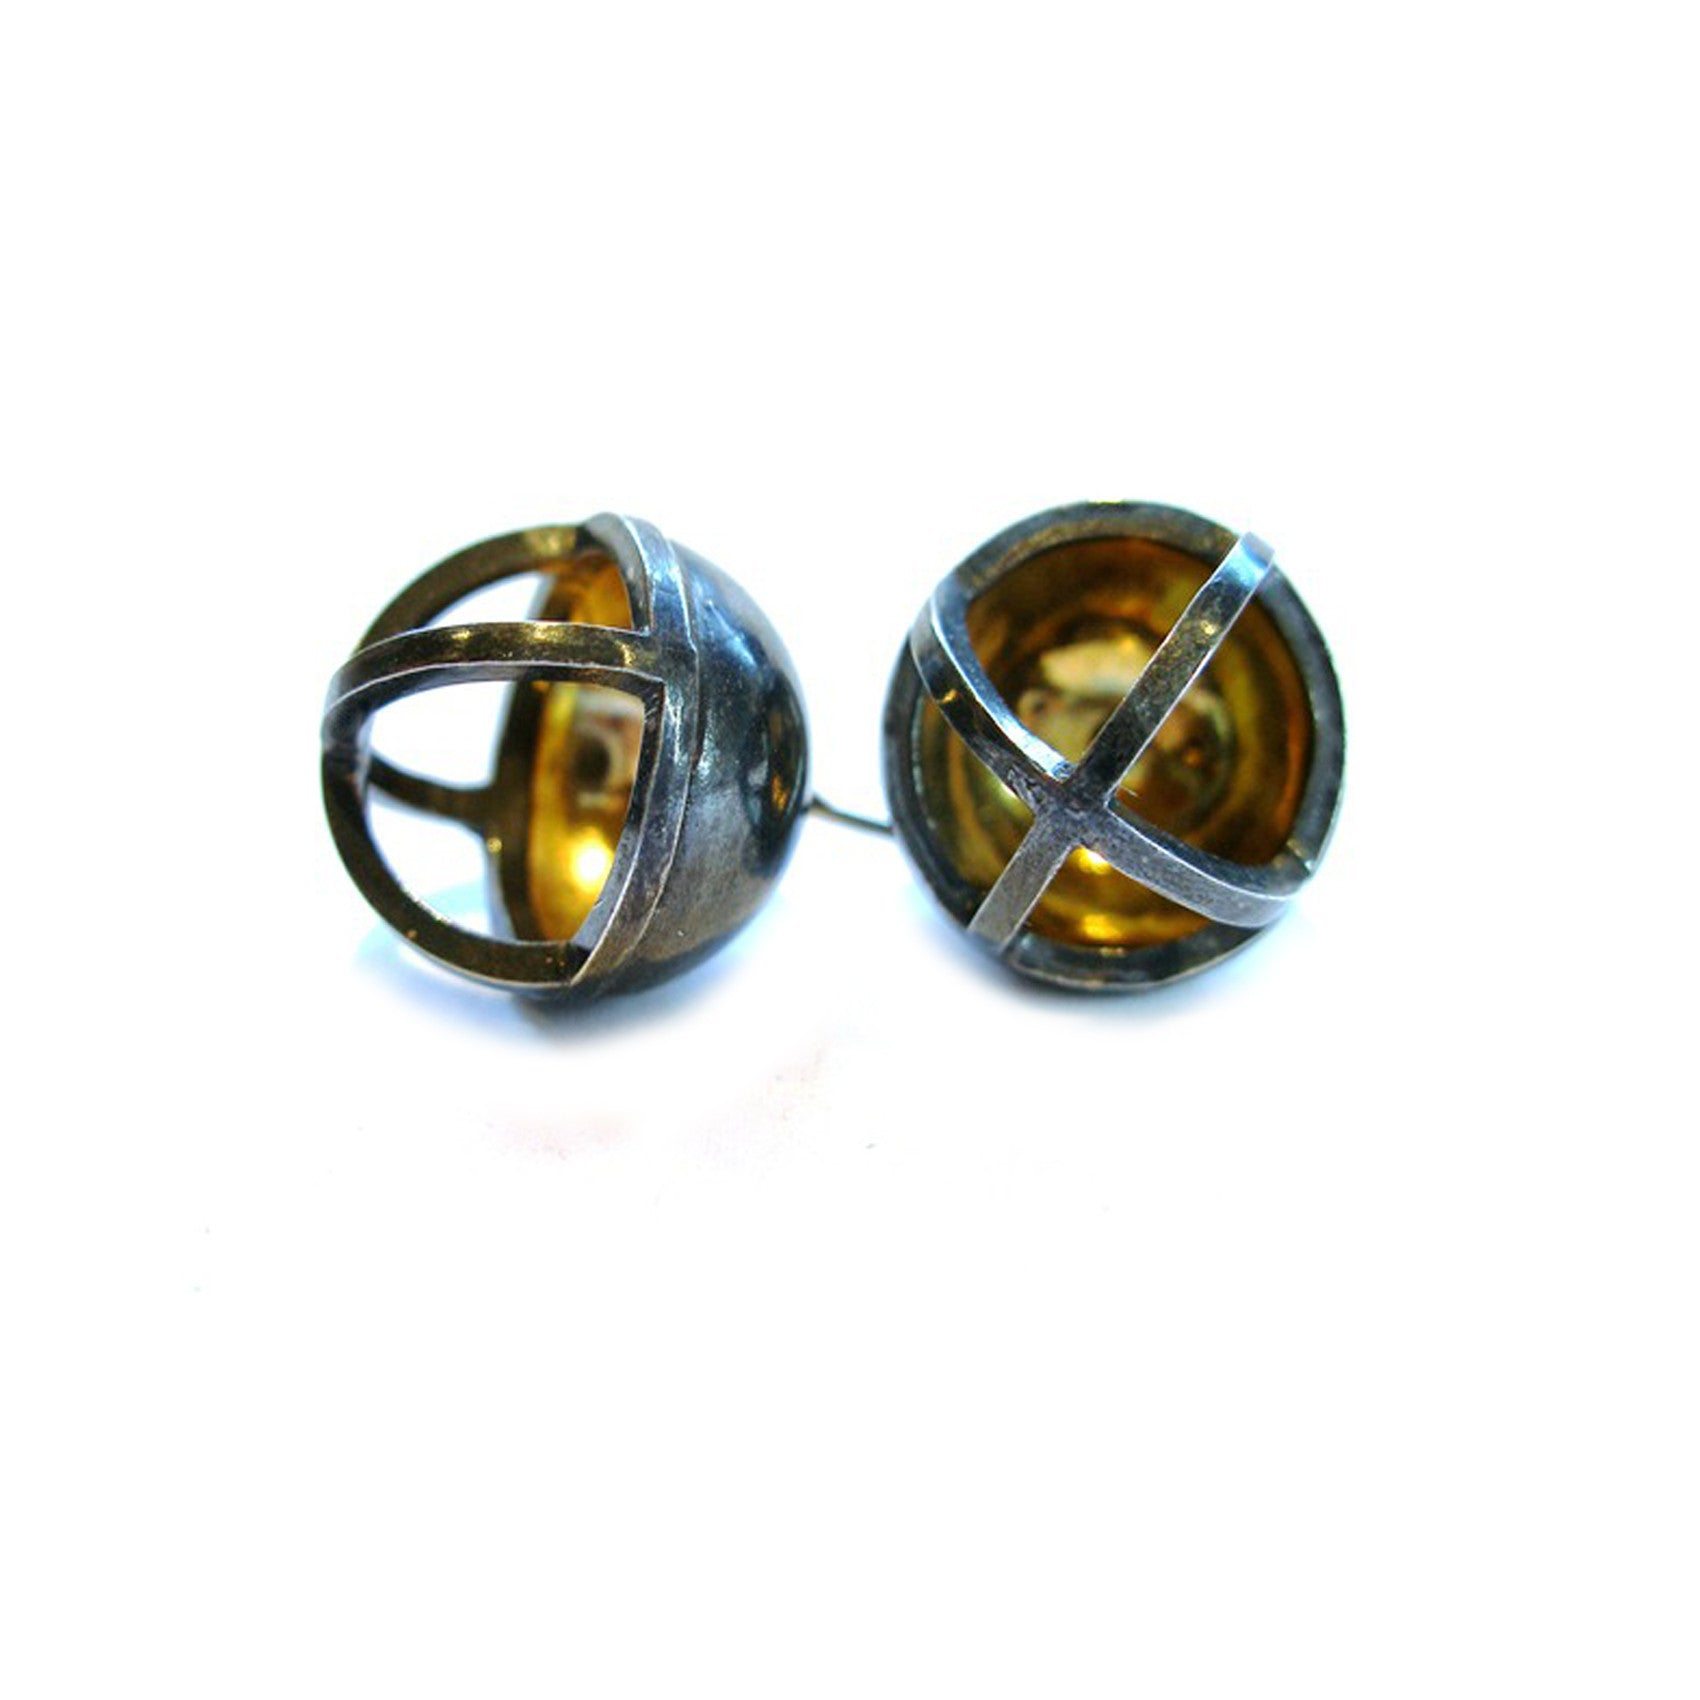 Concave Sphere Earrings in Sterling and 22k Gold